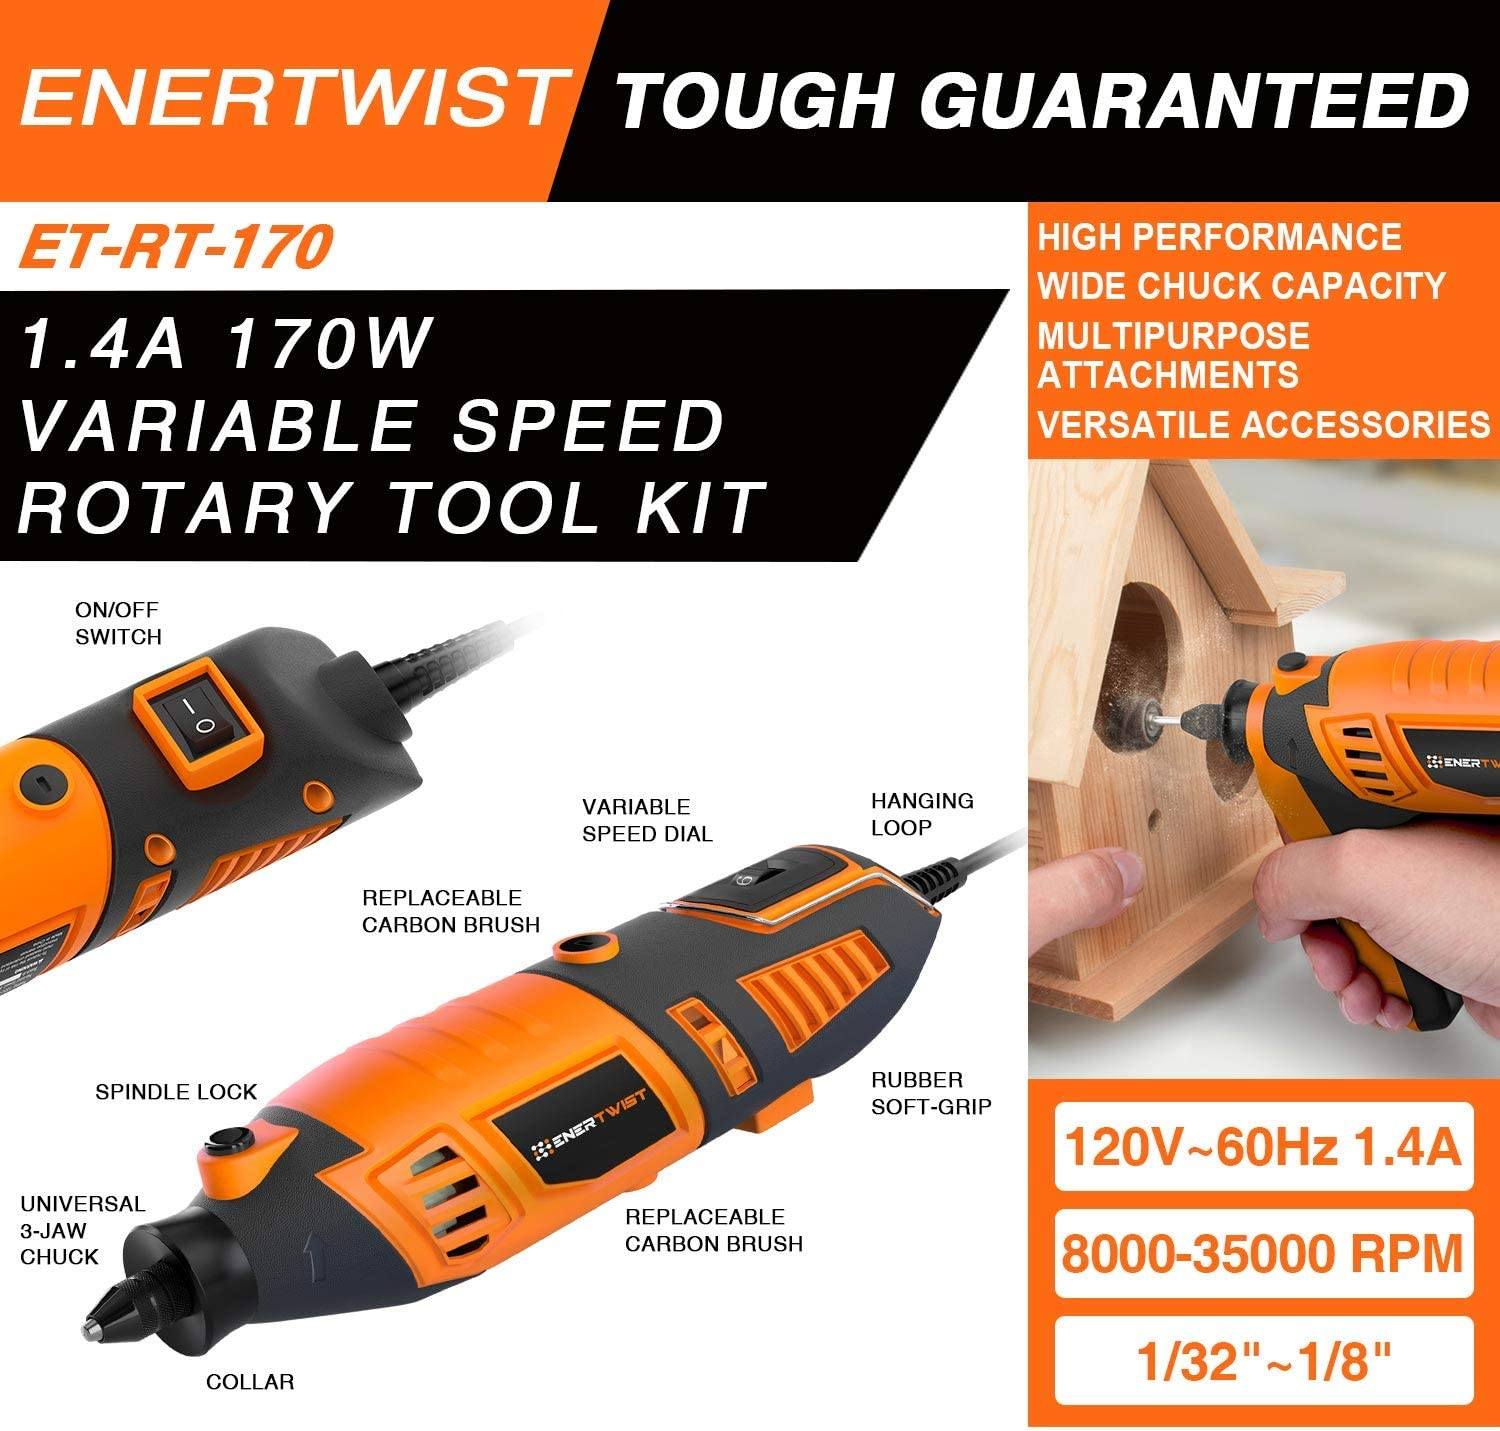 Enertwist Rotary Tool Kit 170W 1.4A with 1 32 1 8 Keyless Chuck, 36 Flex Shaft, 10 Attachments and 130 Accessories Set in Carrying Bag, 8000 35000 RPM for DIY and Crafting Projects, ET-RT-170